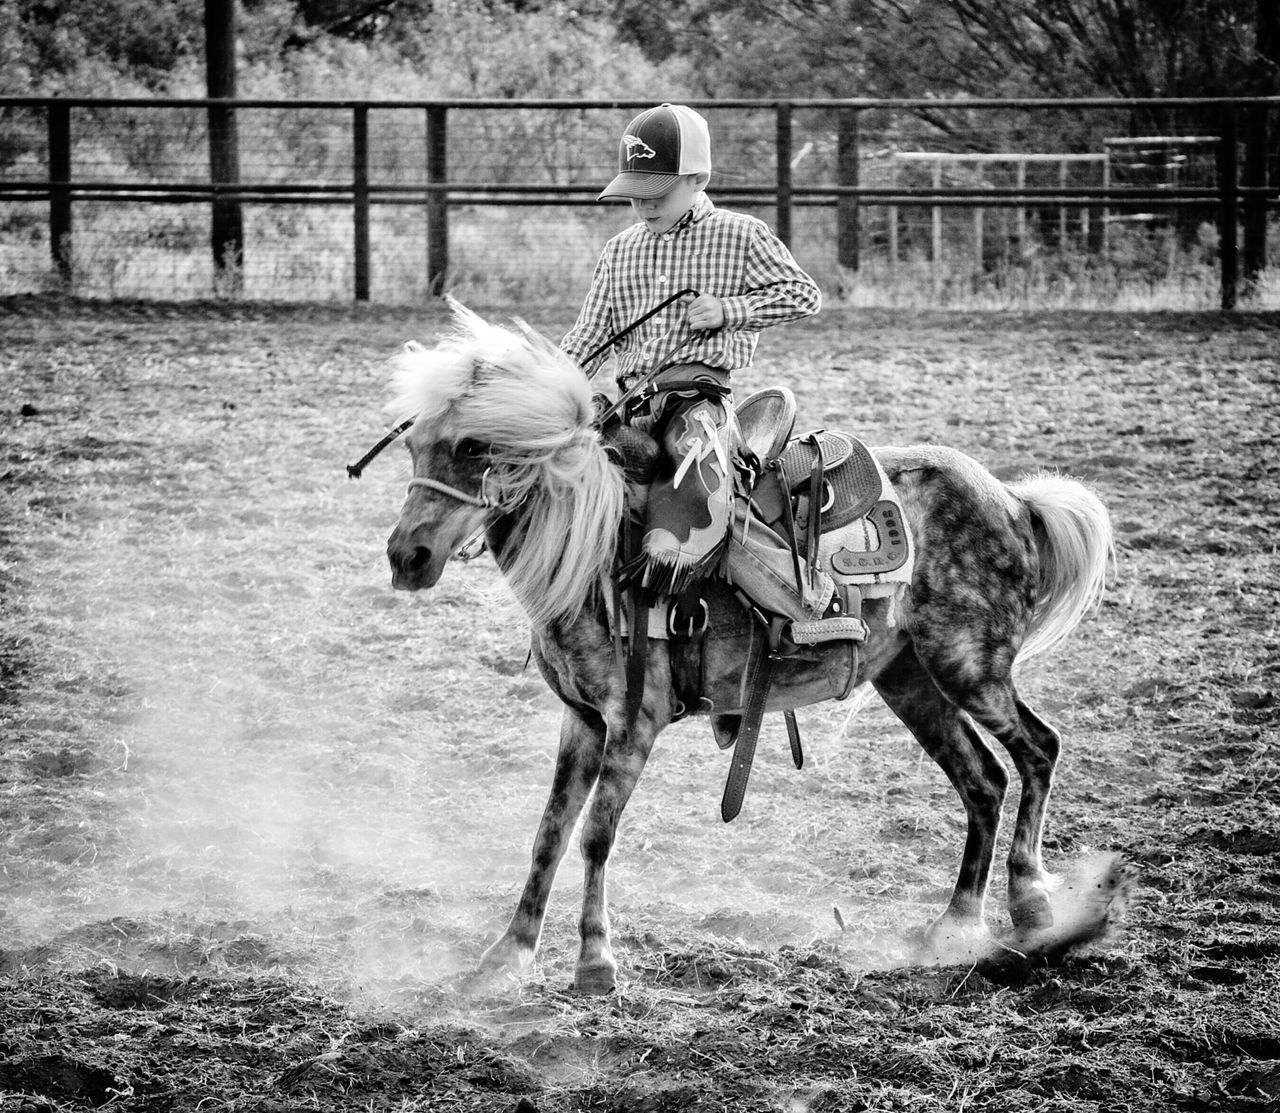 Fortheloveofblackandwhite Playday Horse Riding Black And White Collection  Blackandwhite #bnw #monochrome #instablackandwhite #monoart #insta_bw #bnw_society #bw_lover #bw_photooftheday #bw #bw_society #bw_crew #bwwednesday #insta_pick_bw #bwstyles_gf #irox_bw #igersbnw #bwstyleoftheday #monotone #monochromatic#noir #fineart_ph This Week On Eyeem Black & White Horses Nikonphotography Horse Eye4photography  Photoart Fine Art Photography Black And White Collection! Rodeo Time Bronte Texas West Texas Pony Ponies Cowboy